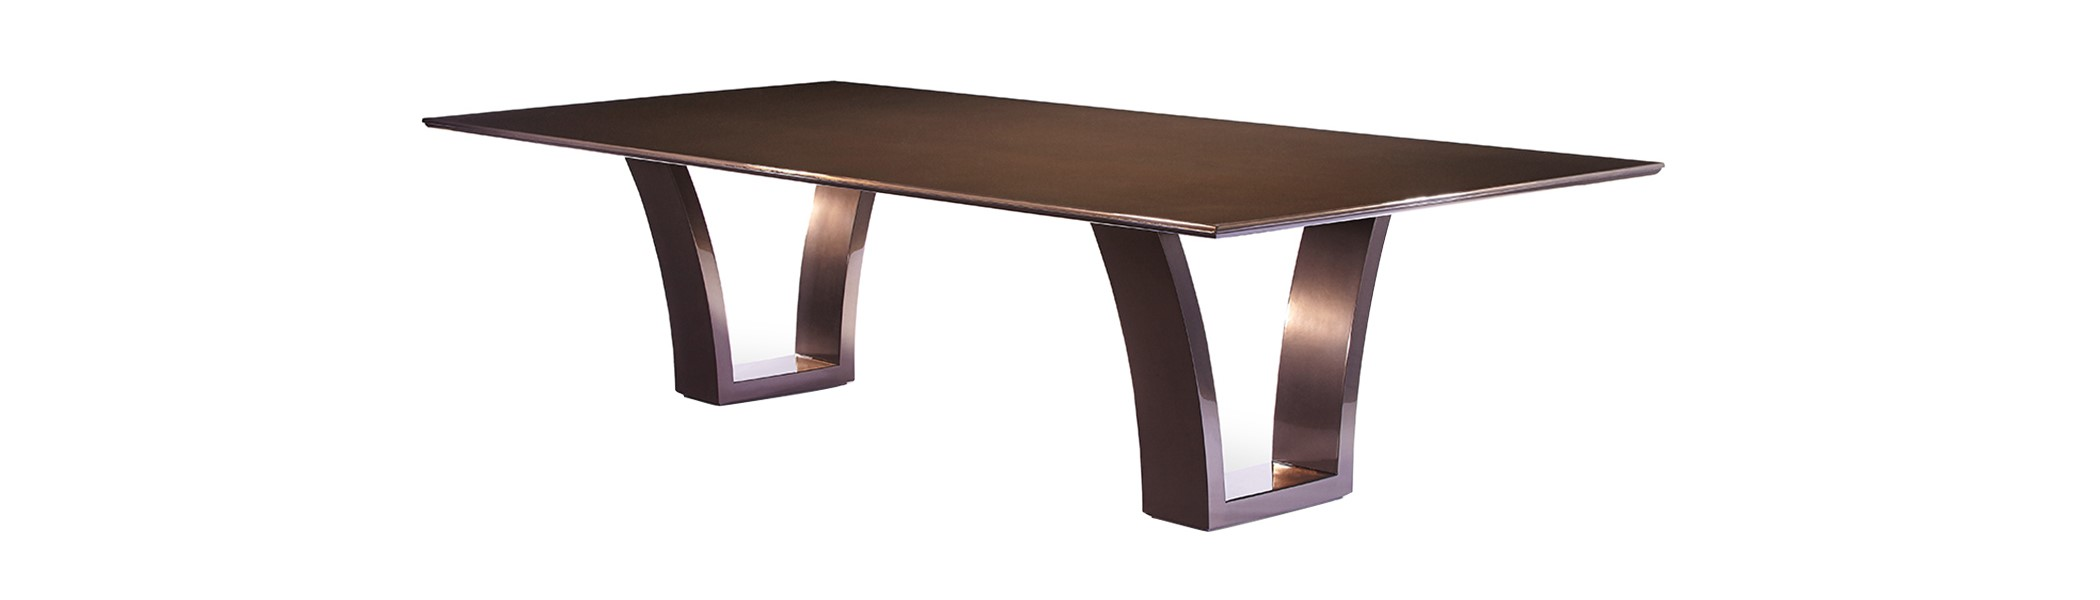 davidson-london-althorpe-dining-table-bronze-2.jpg